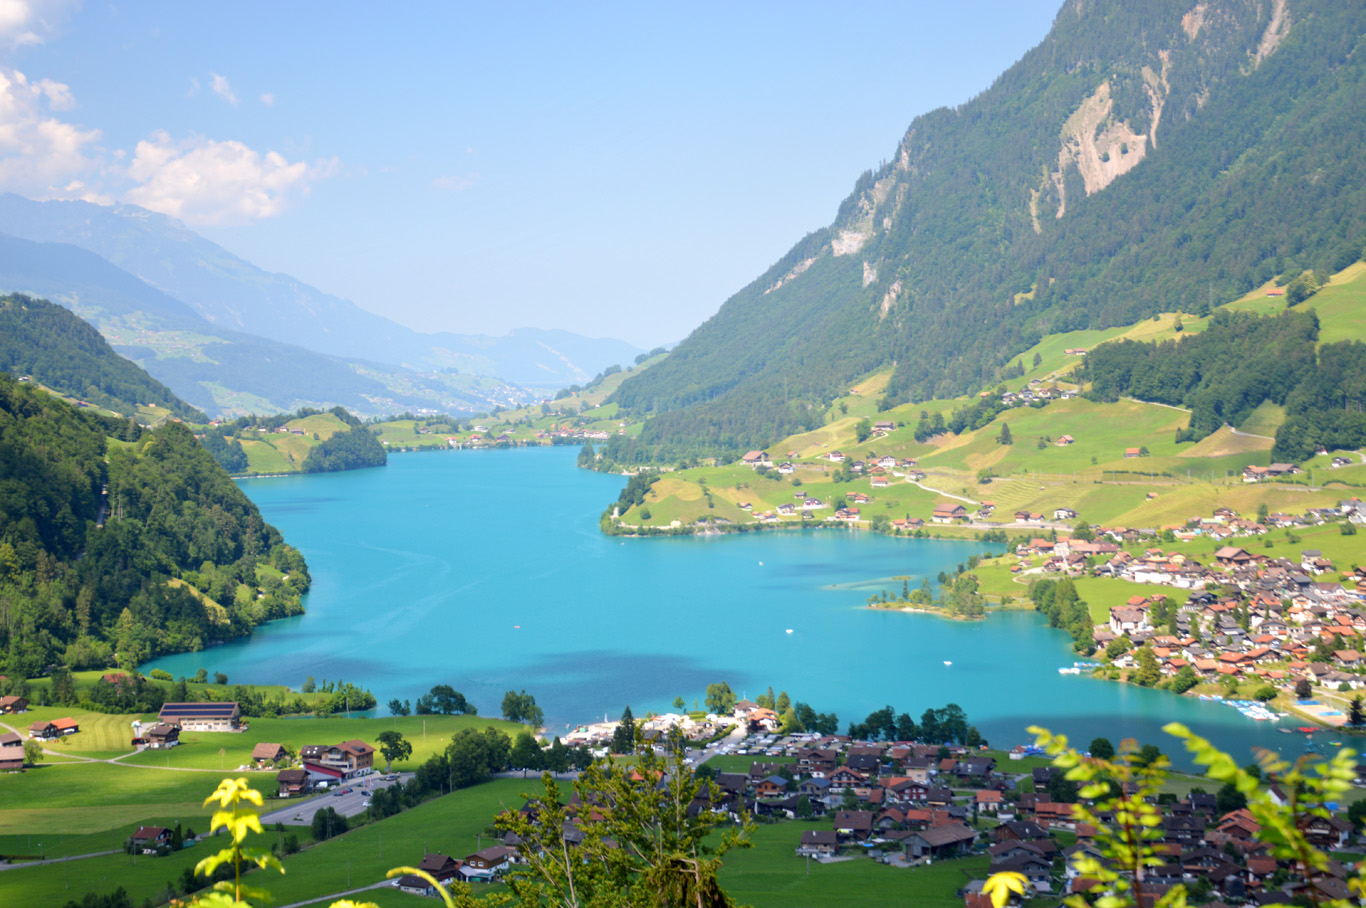 Typical landscapes in Switzerland